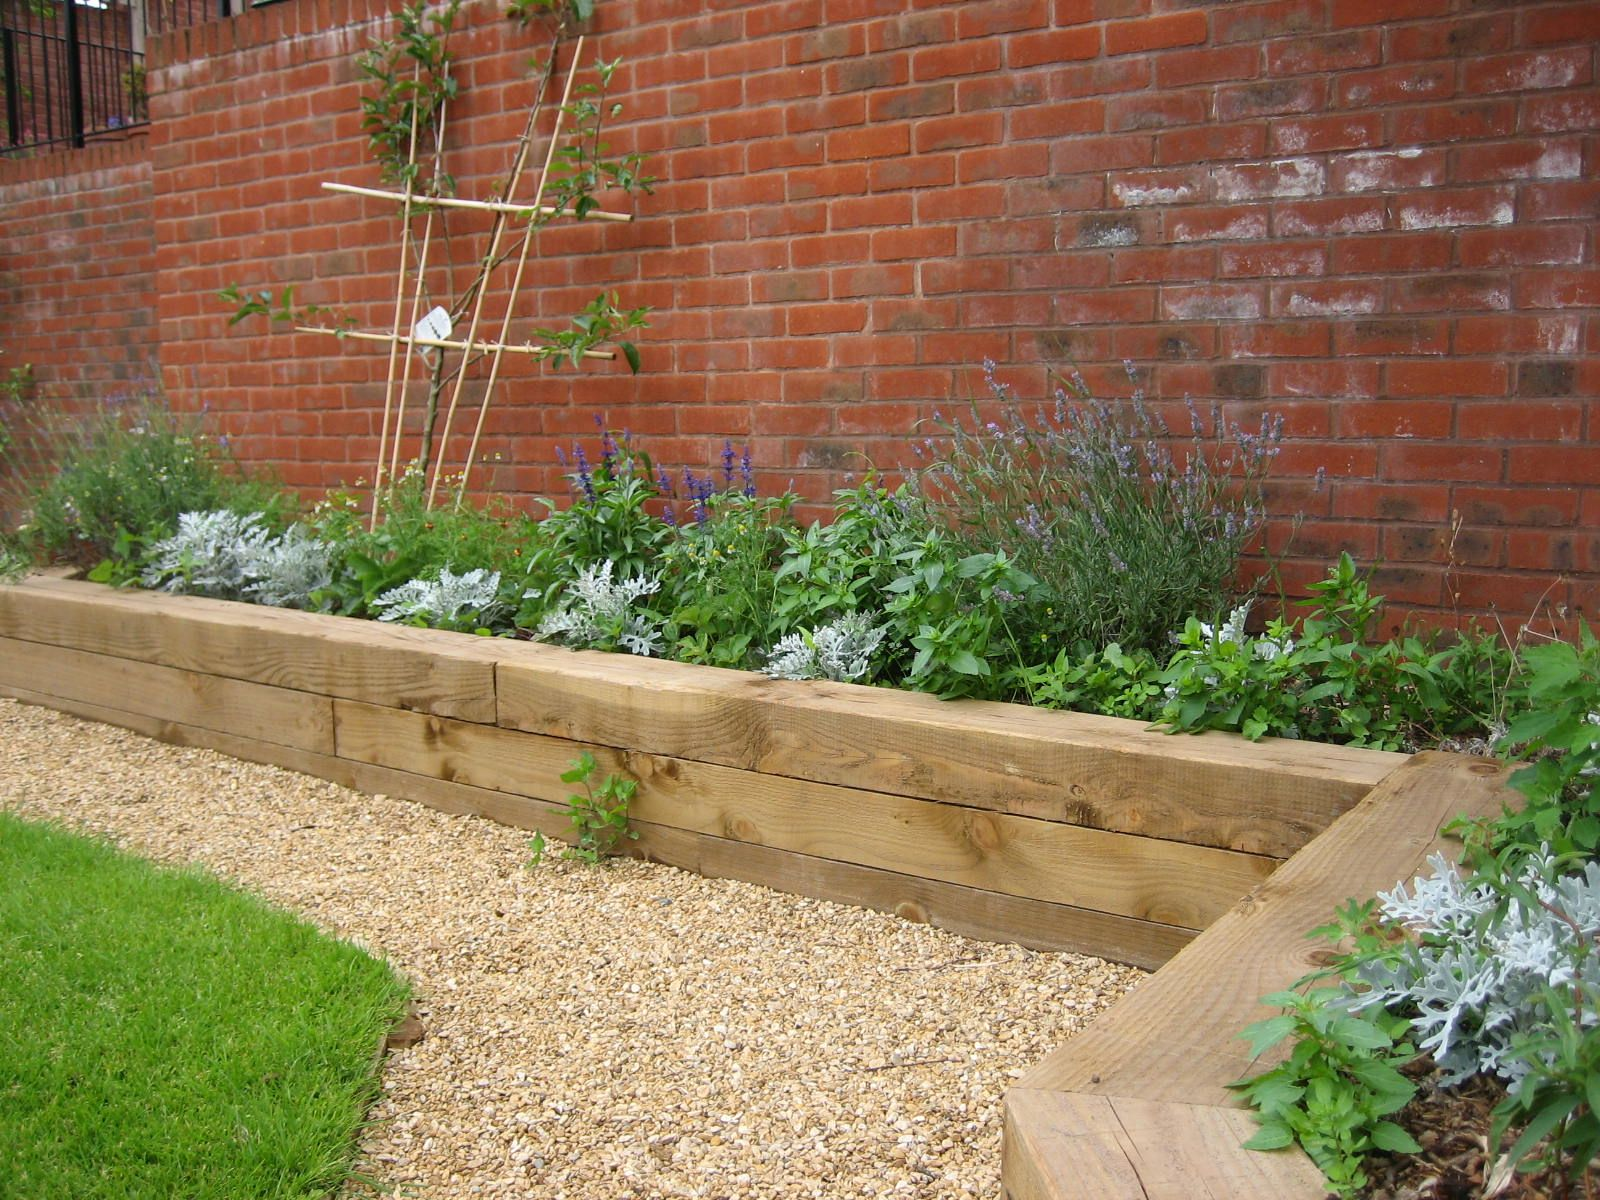 raised beds  railways sleepers  gravel path  brick wall